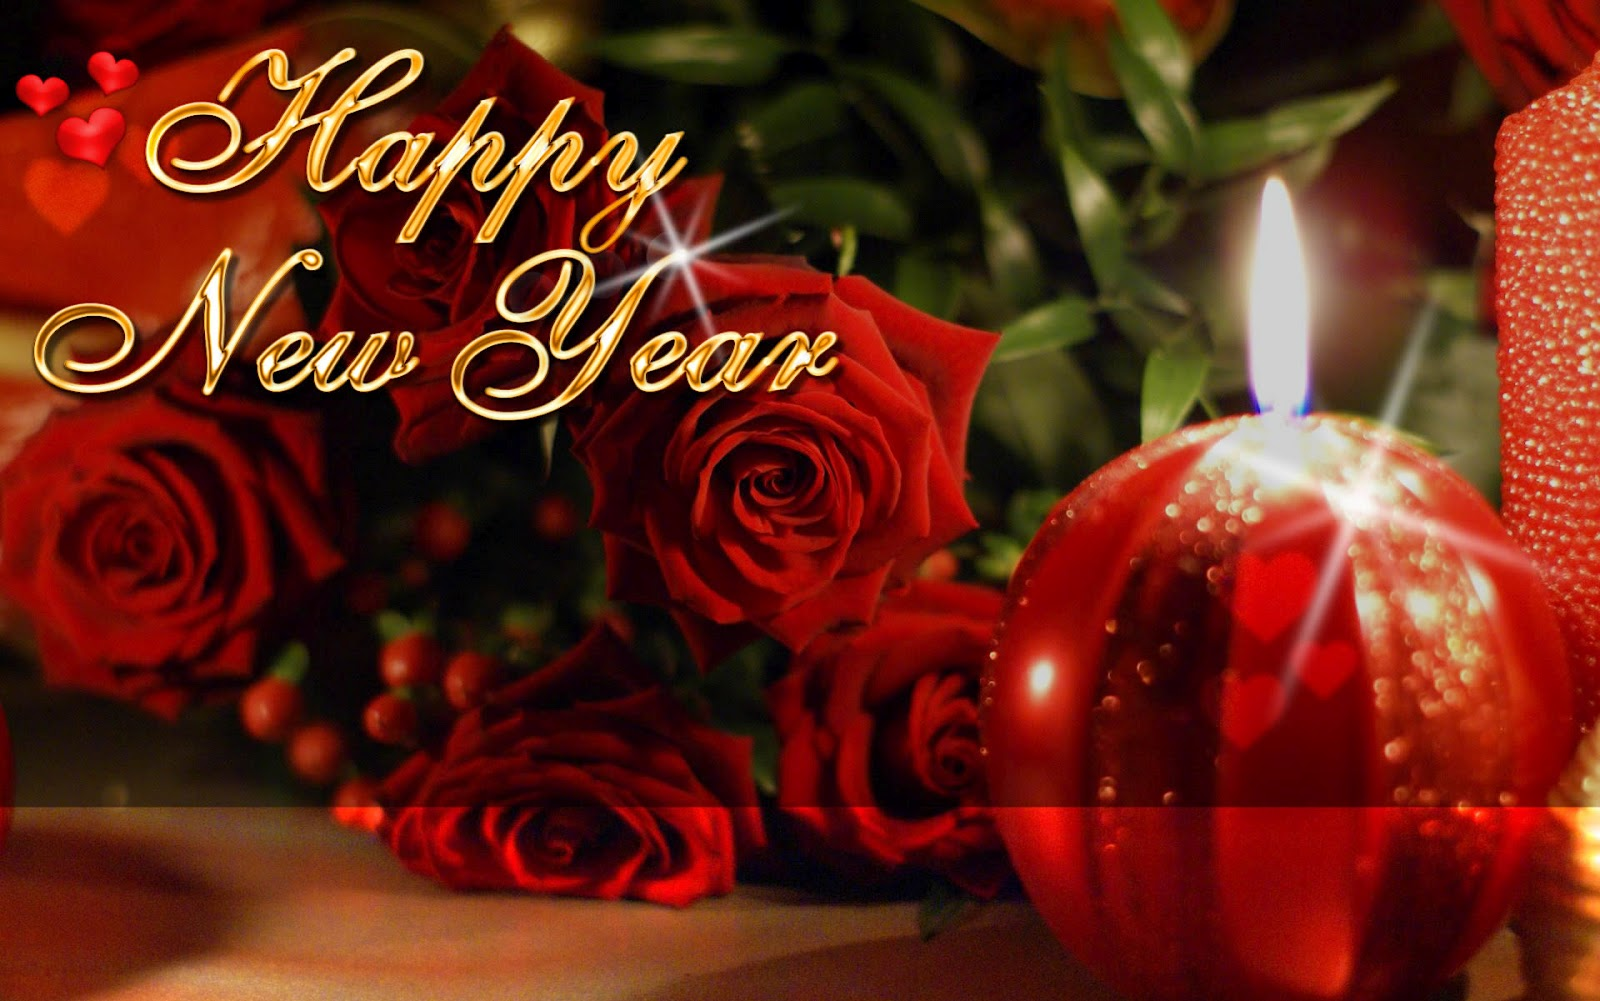 rose gold new year wallpapers 1403f493471708dc9bfd535069e1bab7 happy new year wallpapers 2015 2016 pictures 2015 wallpapers 1600x1001